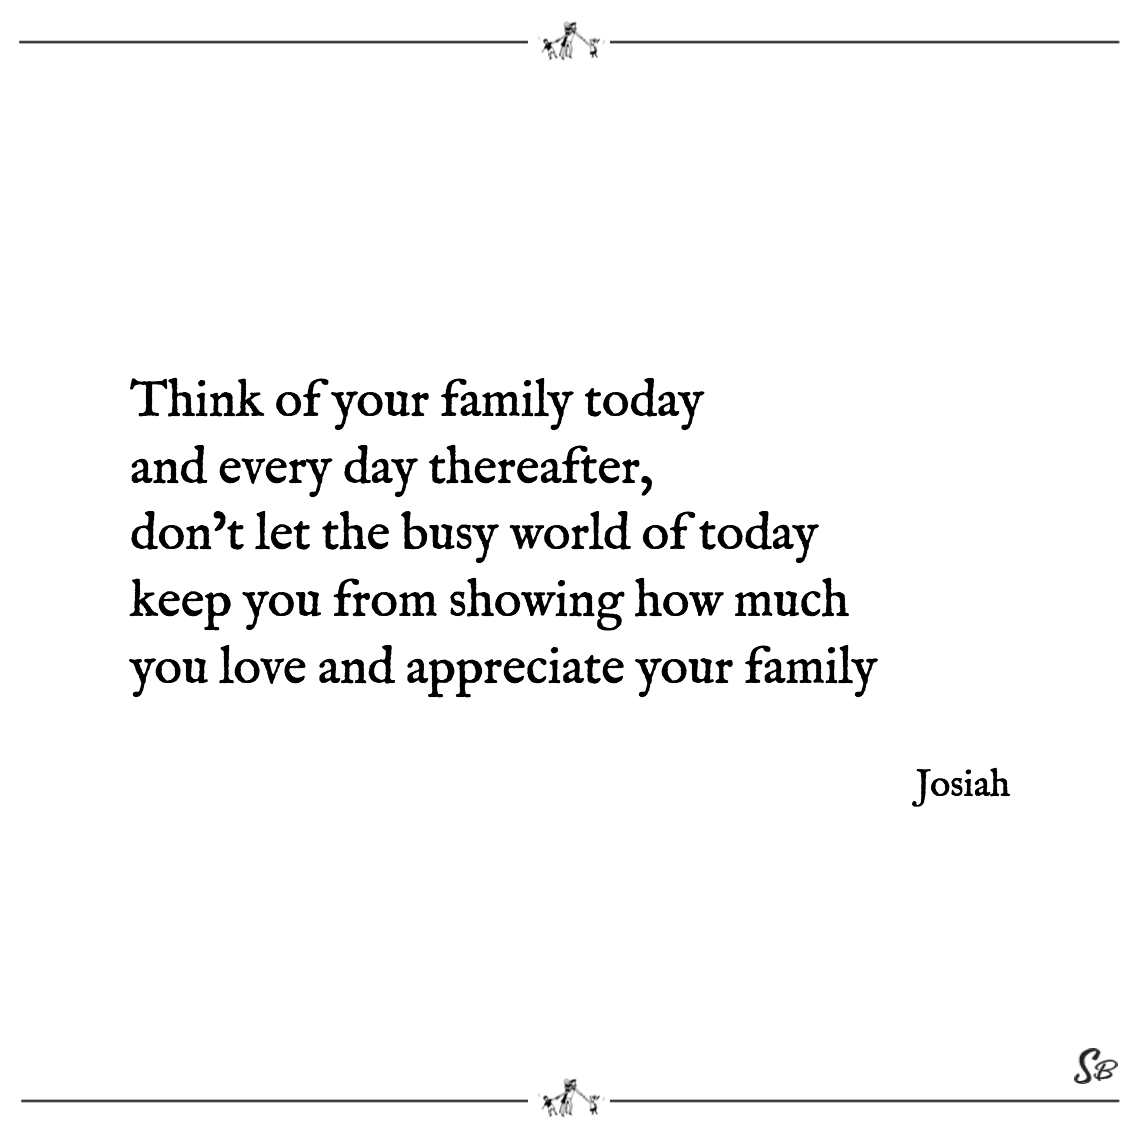 Think of your family today and every day thereafter don t let the busy